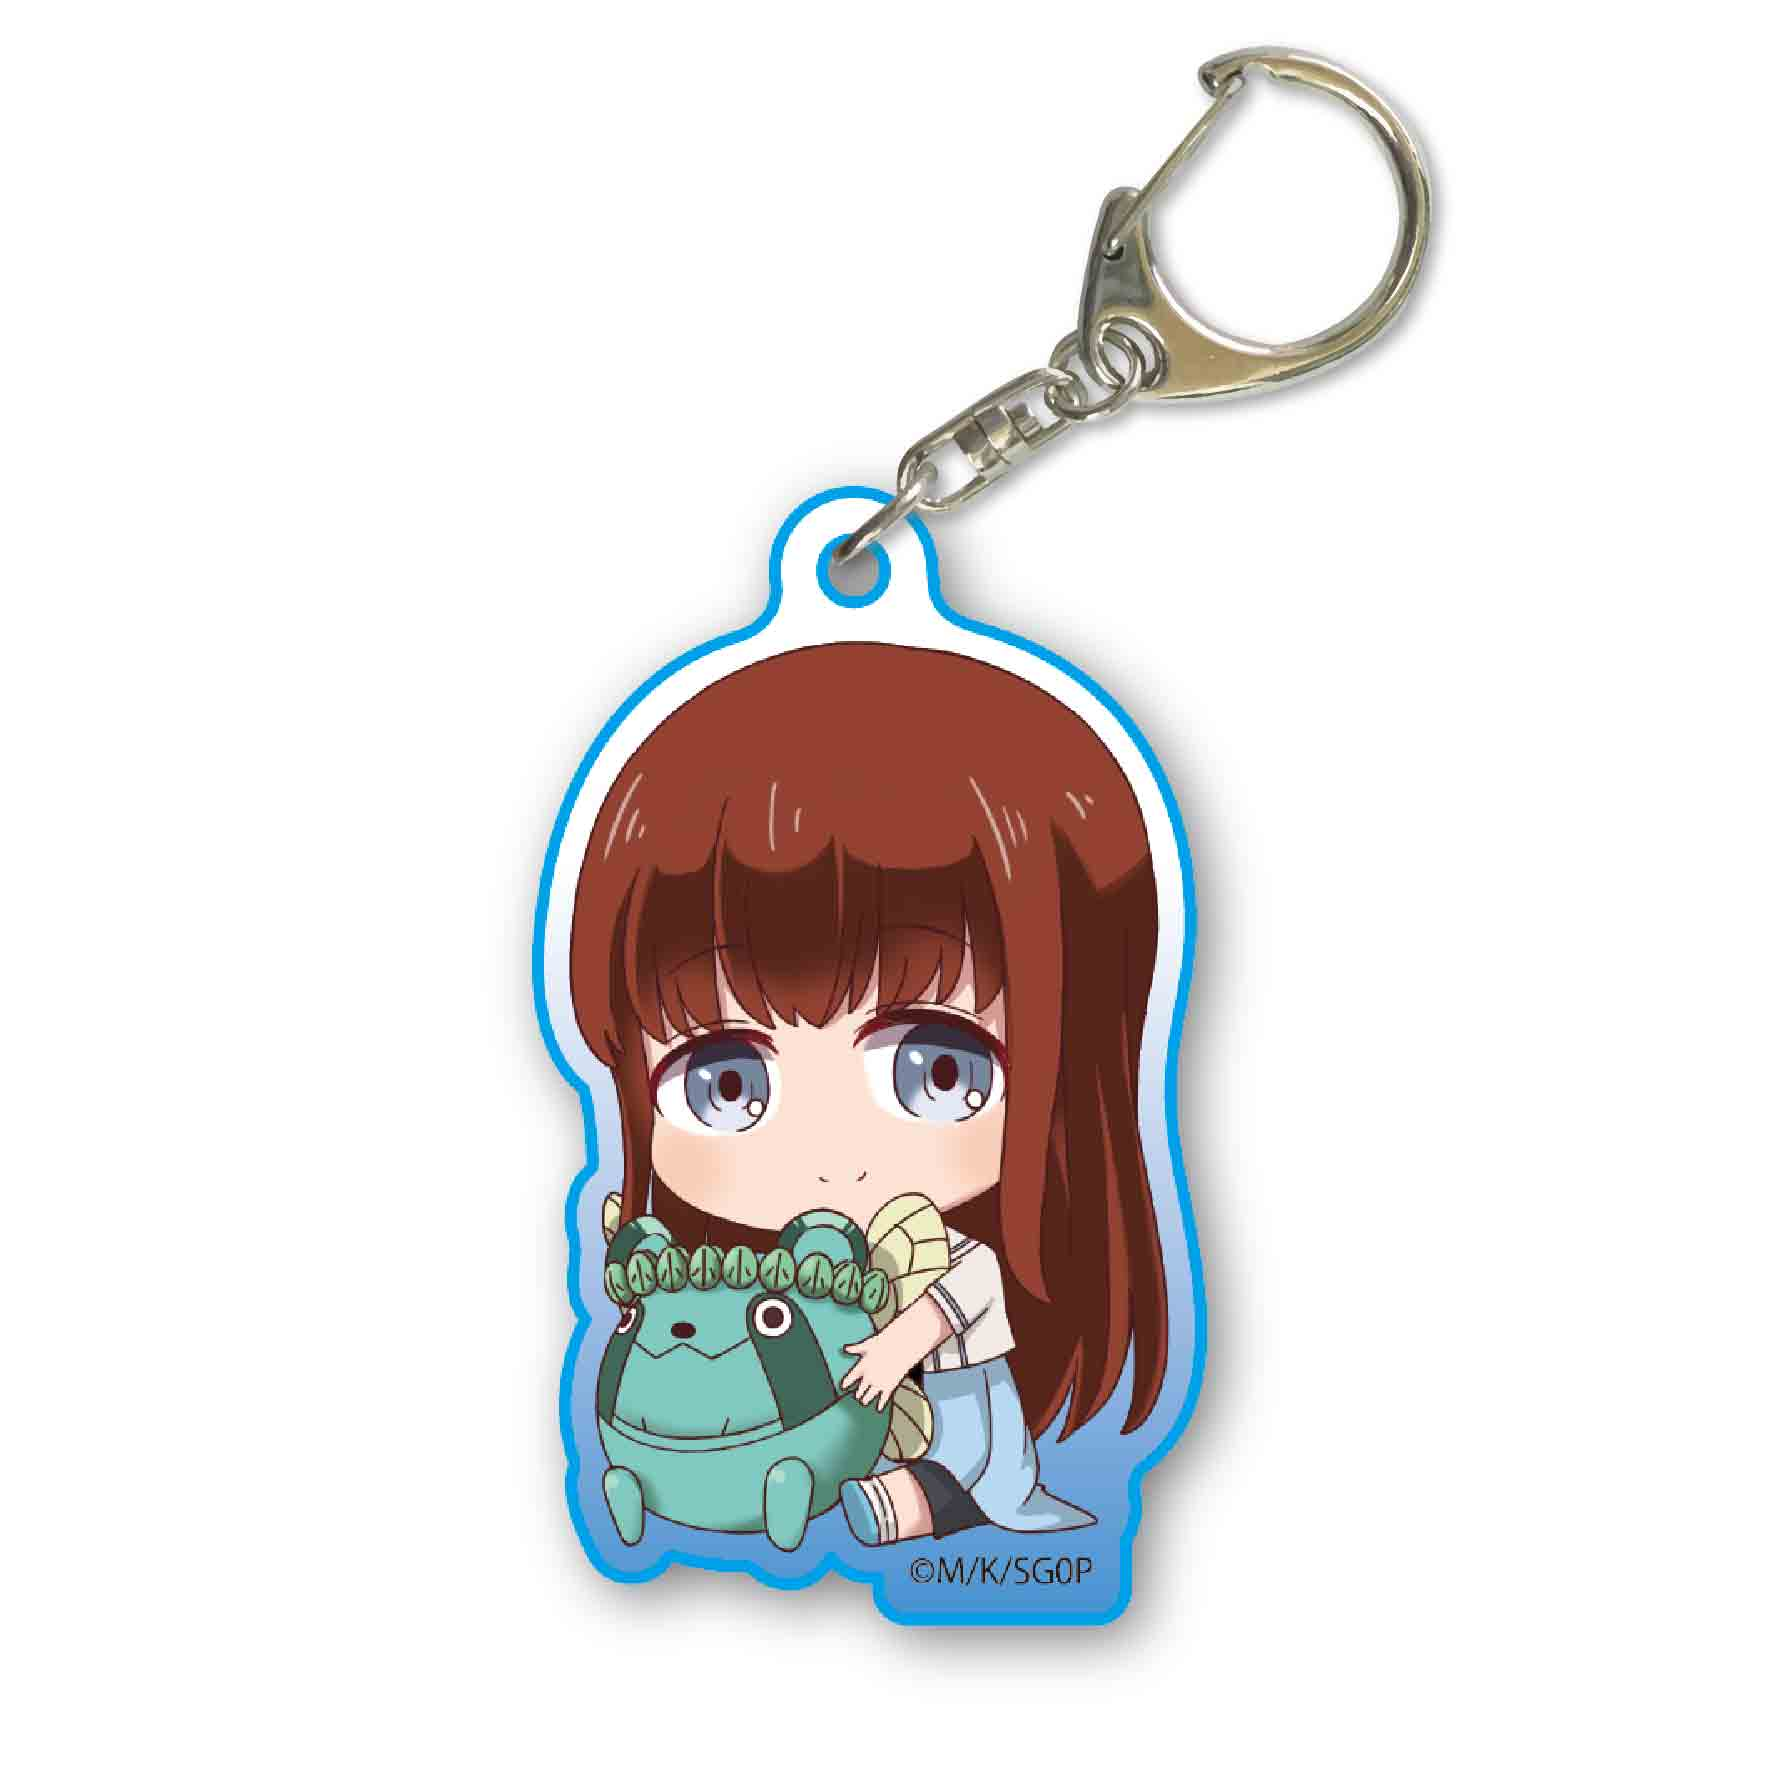 Steins Gate 0 Gyugyutto Acrylic Key Chain Shiina Kagari Kyou Hobby Shop